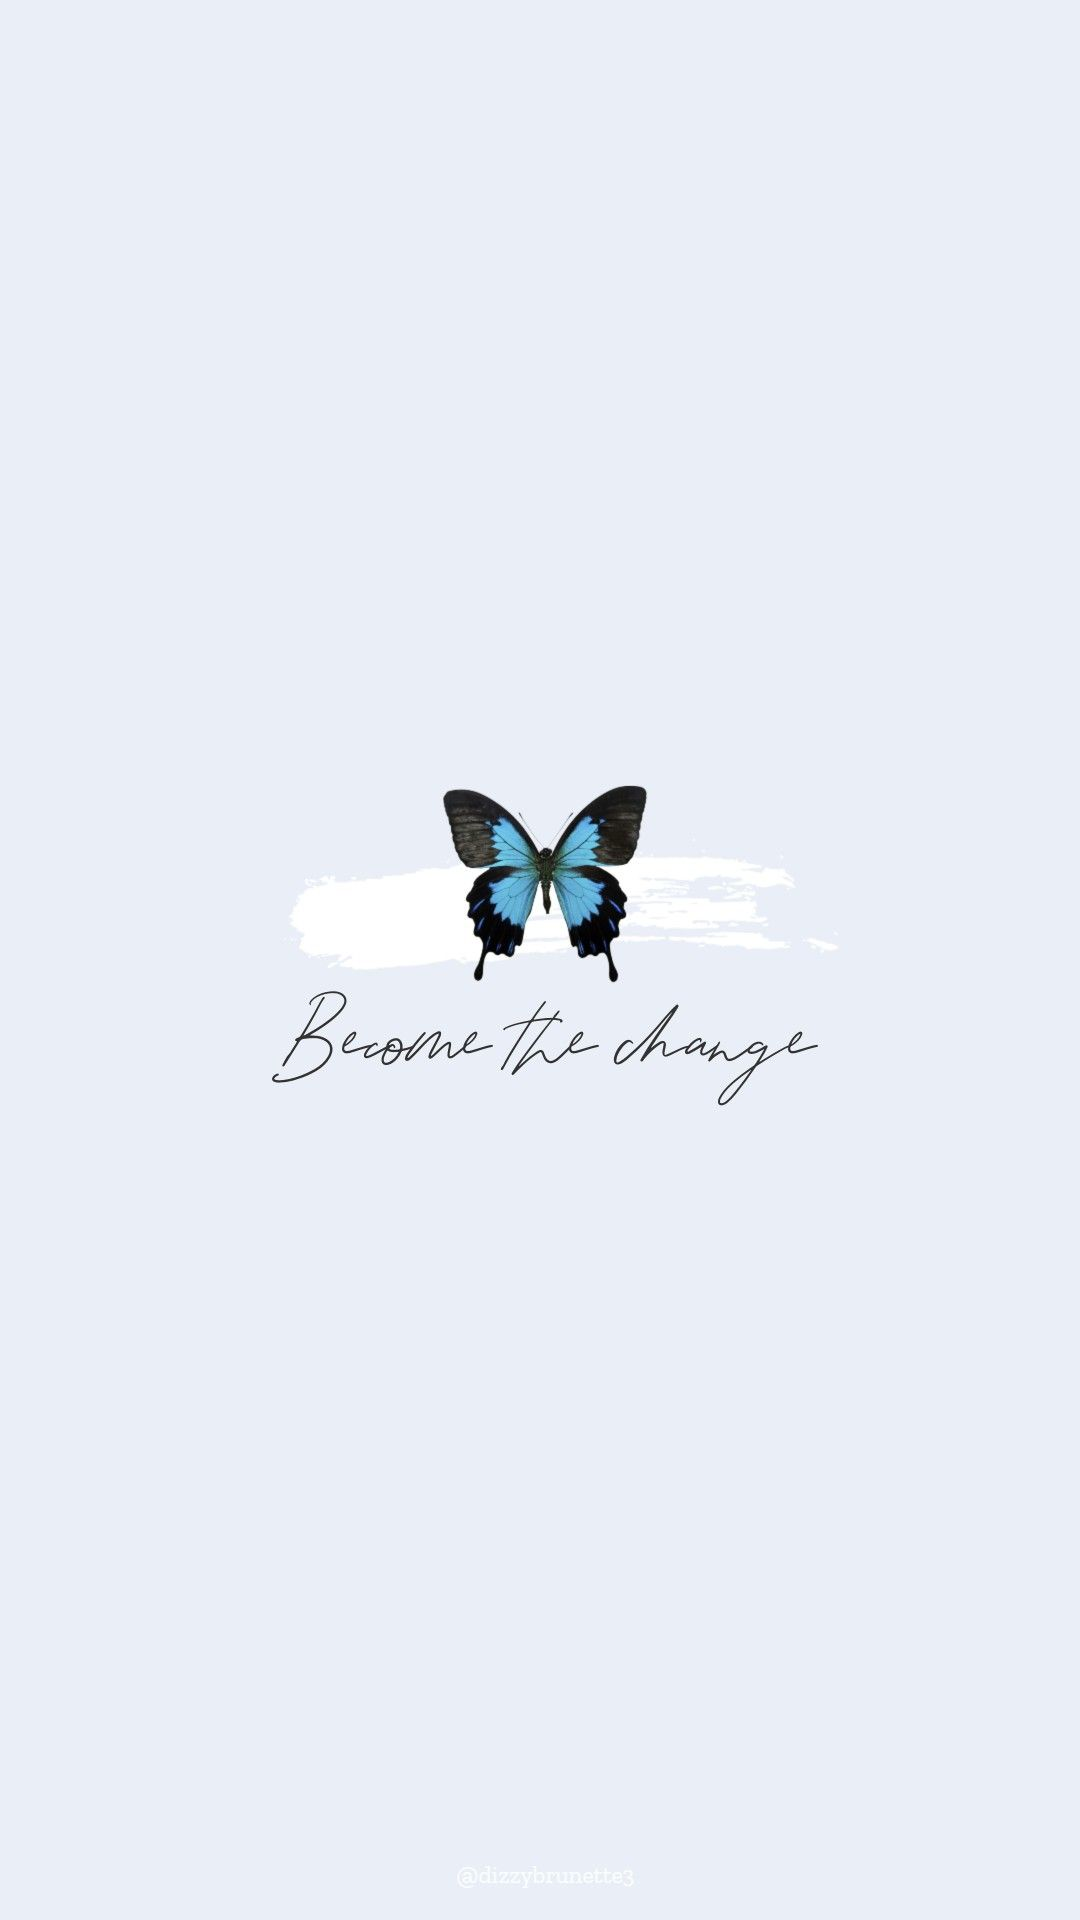 Cute Picture 3 In 2020 Butterfly Wallpaper Iphone Pretty Wallpaper Iphone Aesthetic Iphone Wallpaper